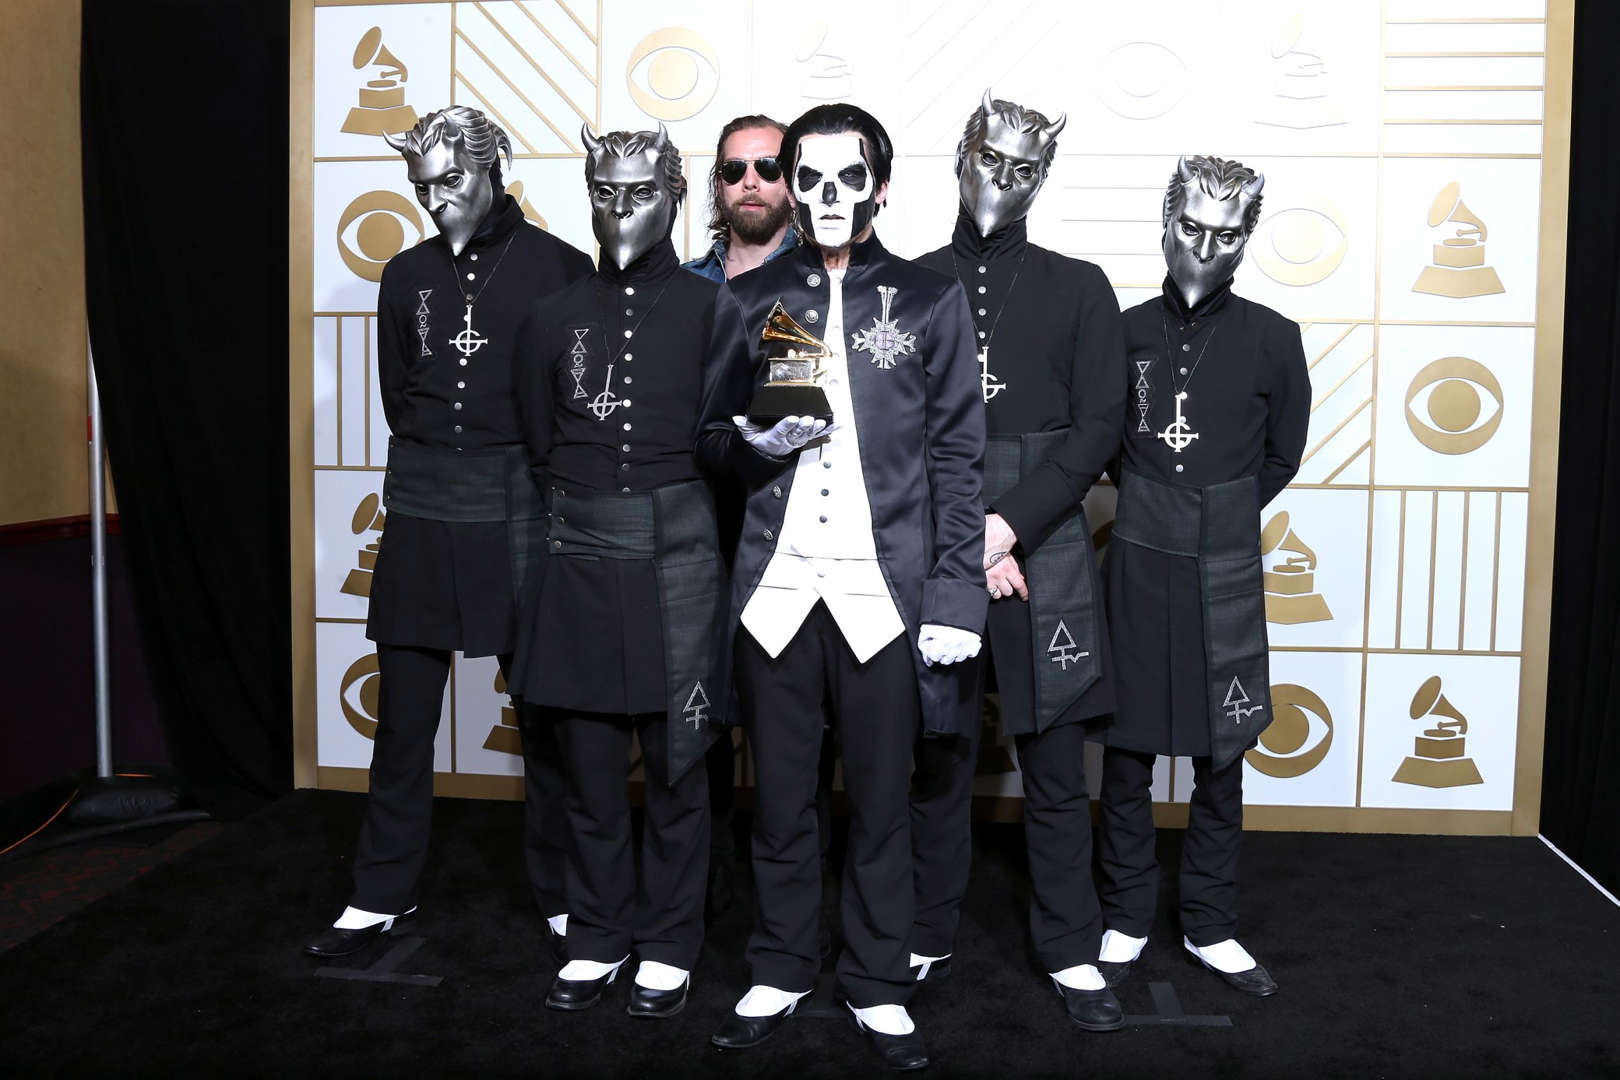 Diapositiva 5 de 11: Musician Papa Emeritus III (C) and fellow members of Ghost, winners of the award for Best Metal Performance for 'Cirice,' poses in the press room during The 58th GRAMMY Awards at Staples Center on February 15, 2016 in Los Angeles, California.